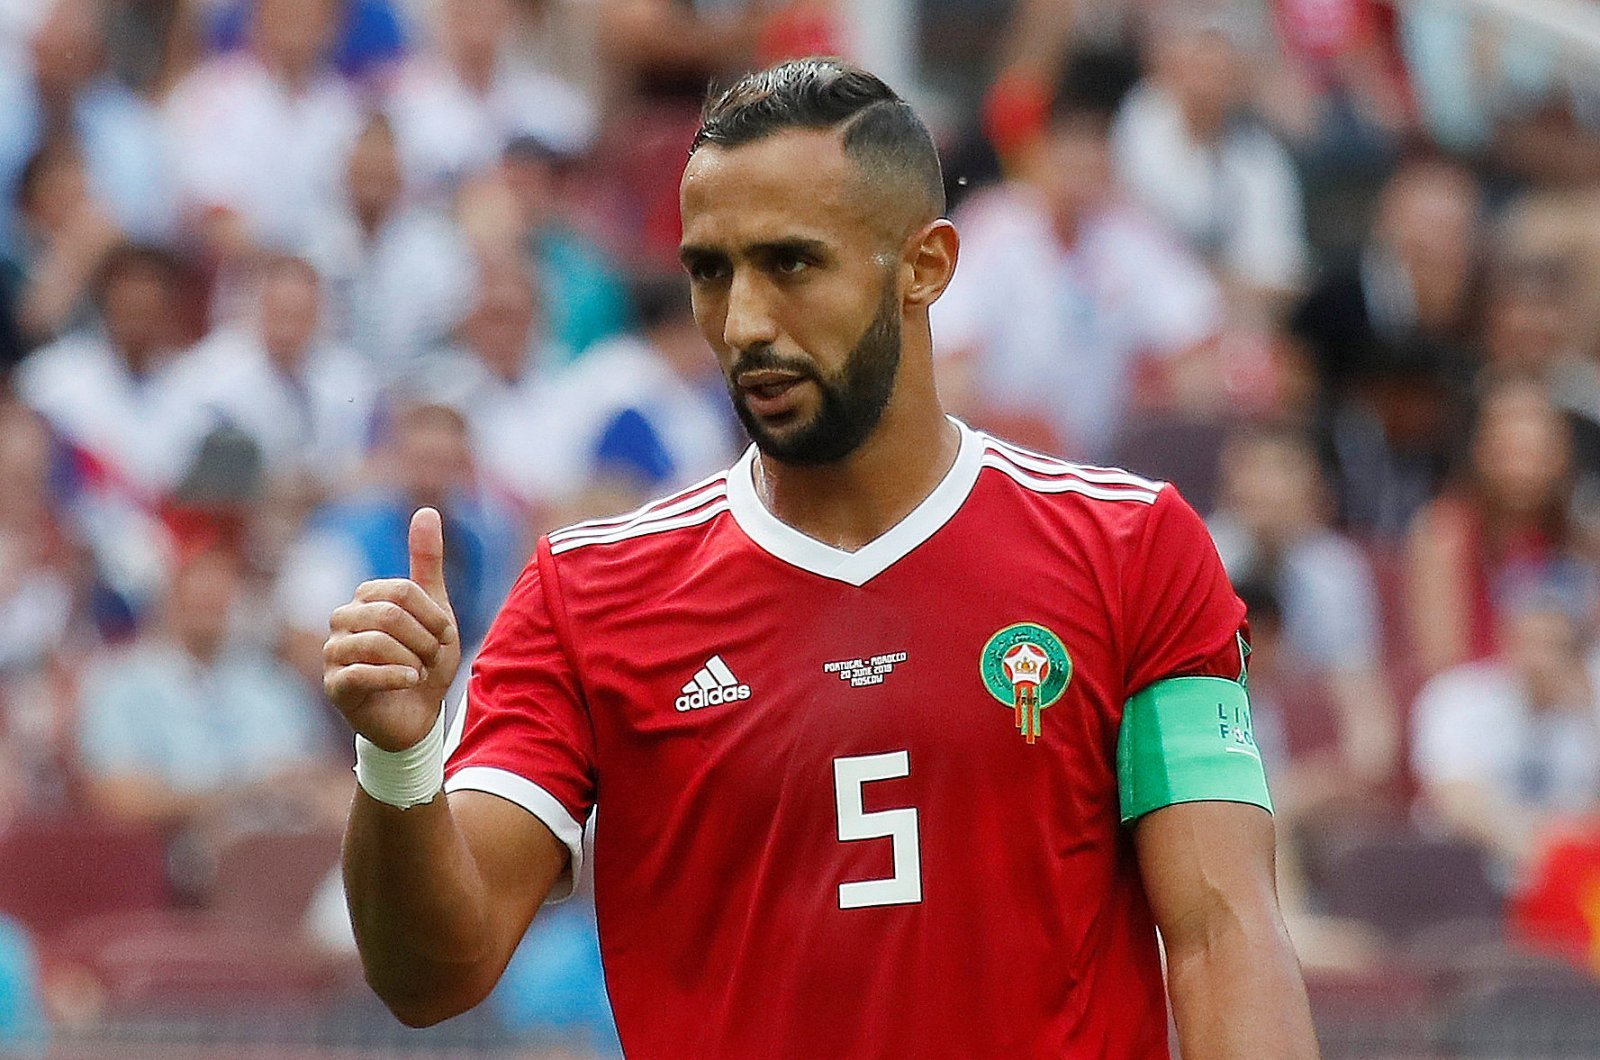 Medhi Benatia could help Arsenal's young defenders learn a lot